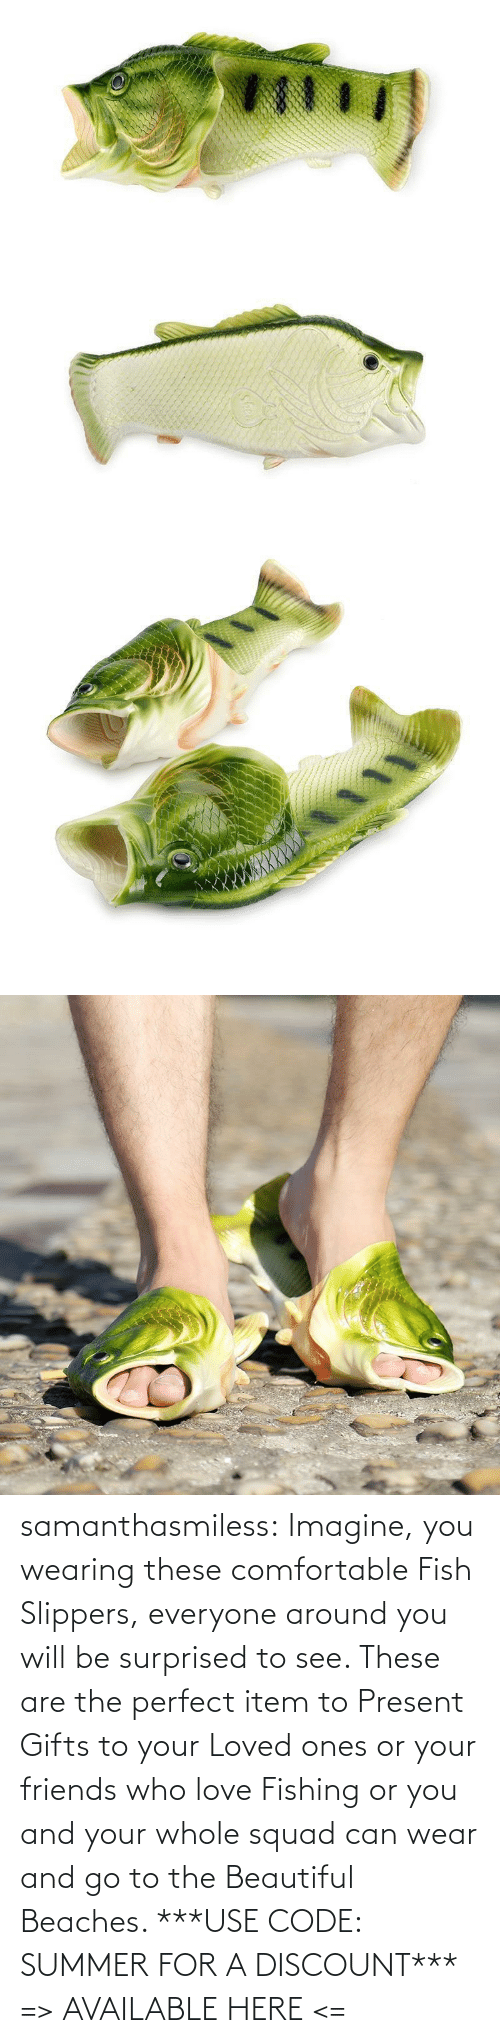 perfect: samanthasmiless: Imagine, you wearing these comfortable Fish Slippers, everyone around you will be surprised to see. These are the perfect item to Present Gifts to your Loved ones or your friends who love Fishing or you and your whole squad can wear and go to the Beautiful Beaches.  ***USE CODE: SUMMER FOR A DISCOUNT*** => AVAILABLE HERE <=